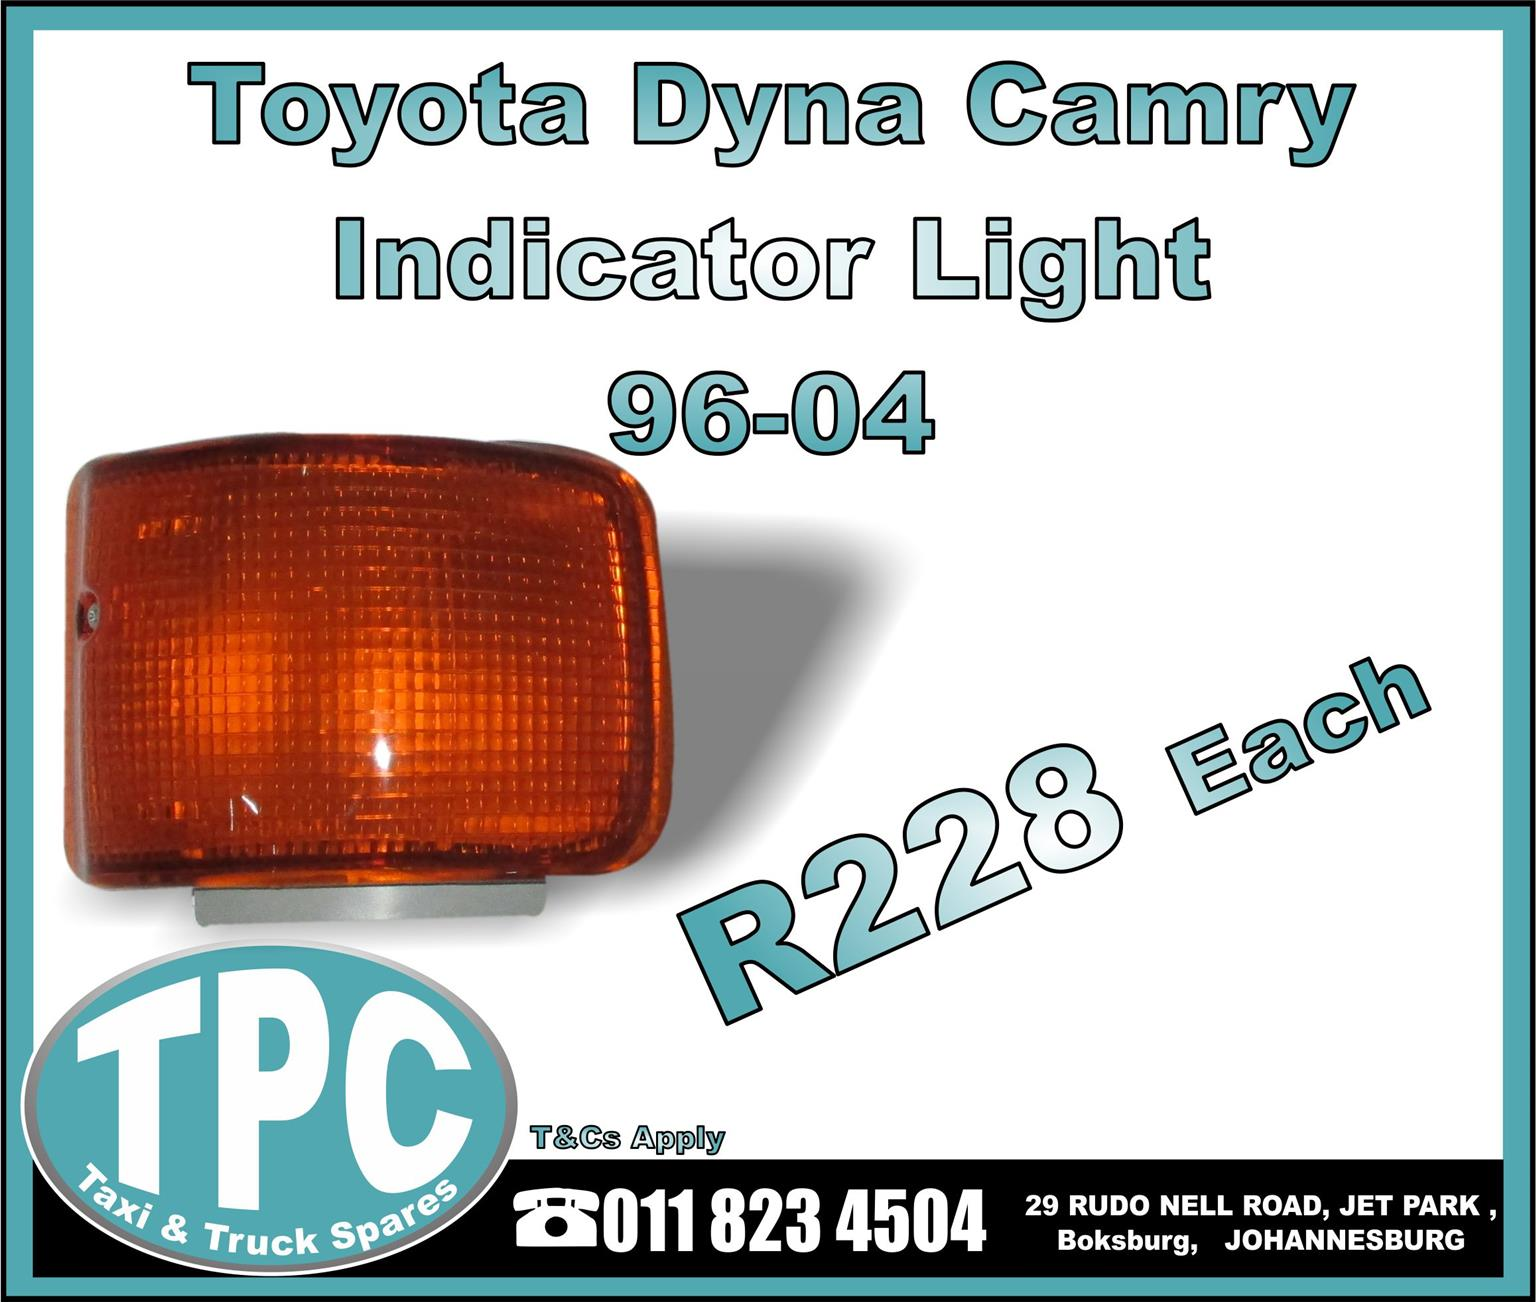 Toyota Dyna Camry Indicator Light - 96-04 - New Replacement Truck Body Parts- TPC.